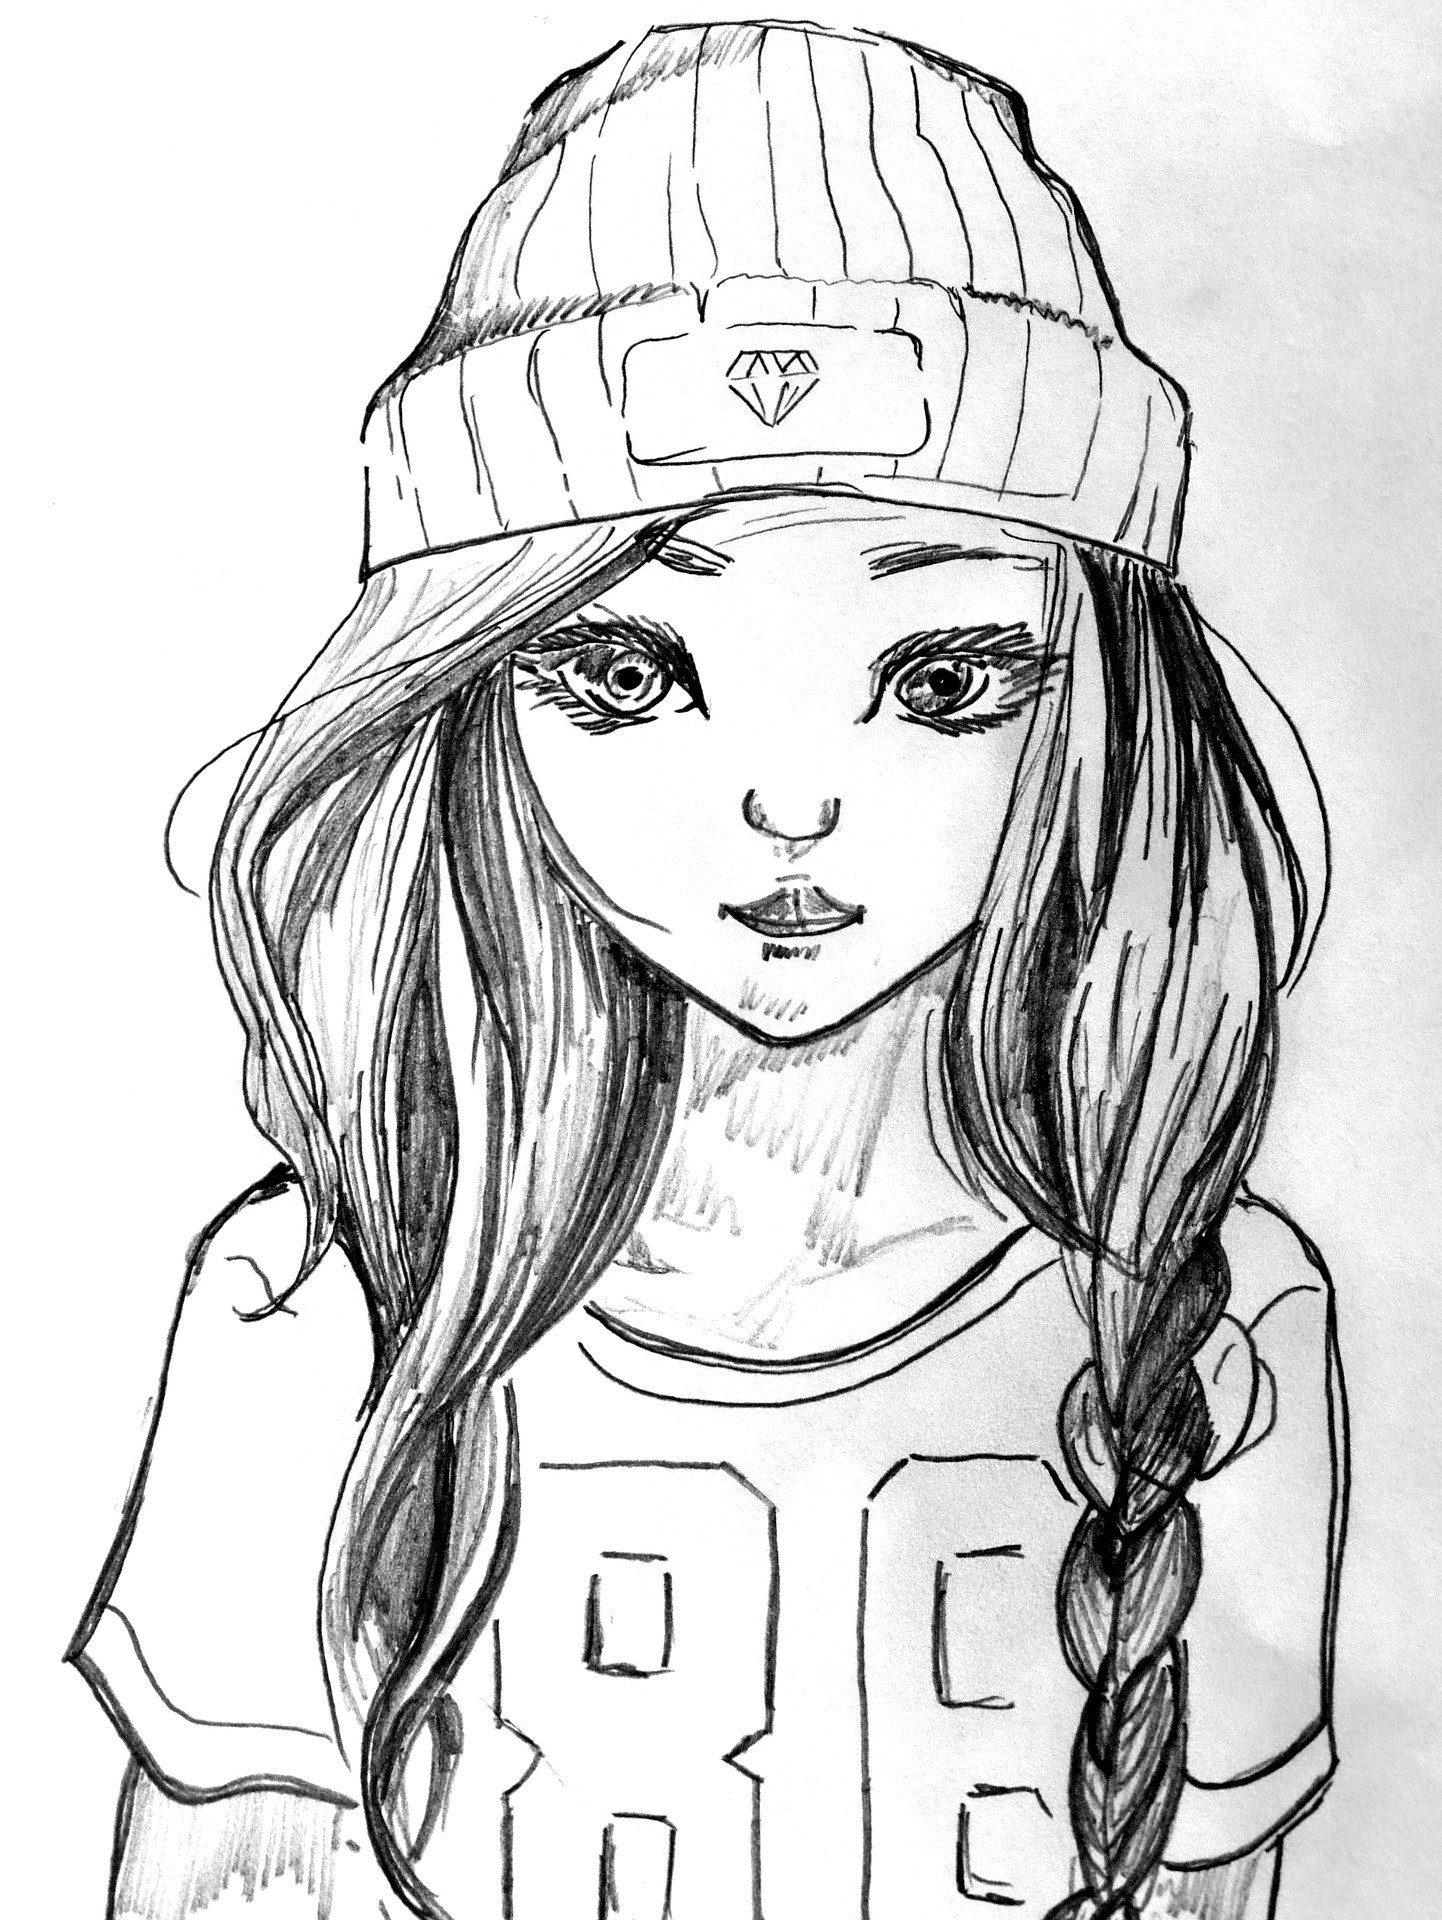 coloring pages of girls realistic adult coloring page girl portrait and leaves colouring girls of coloring realistic pages